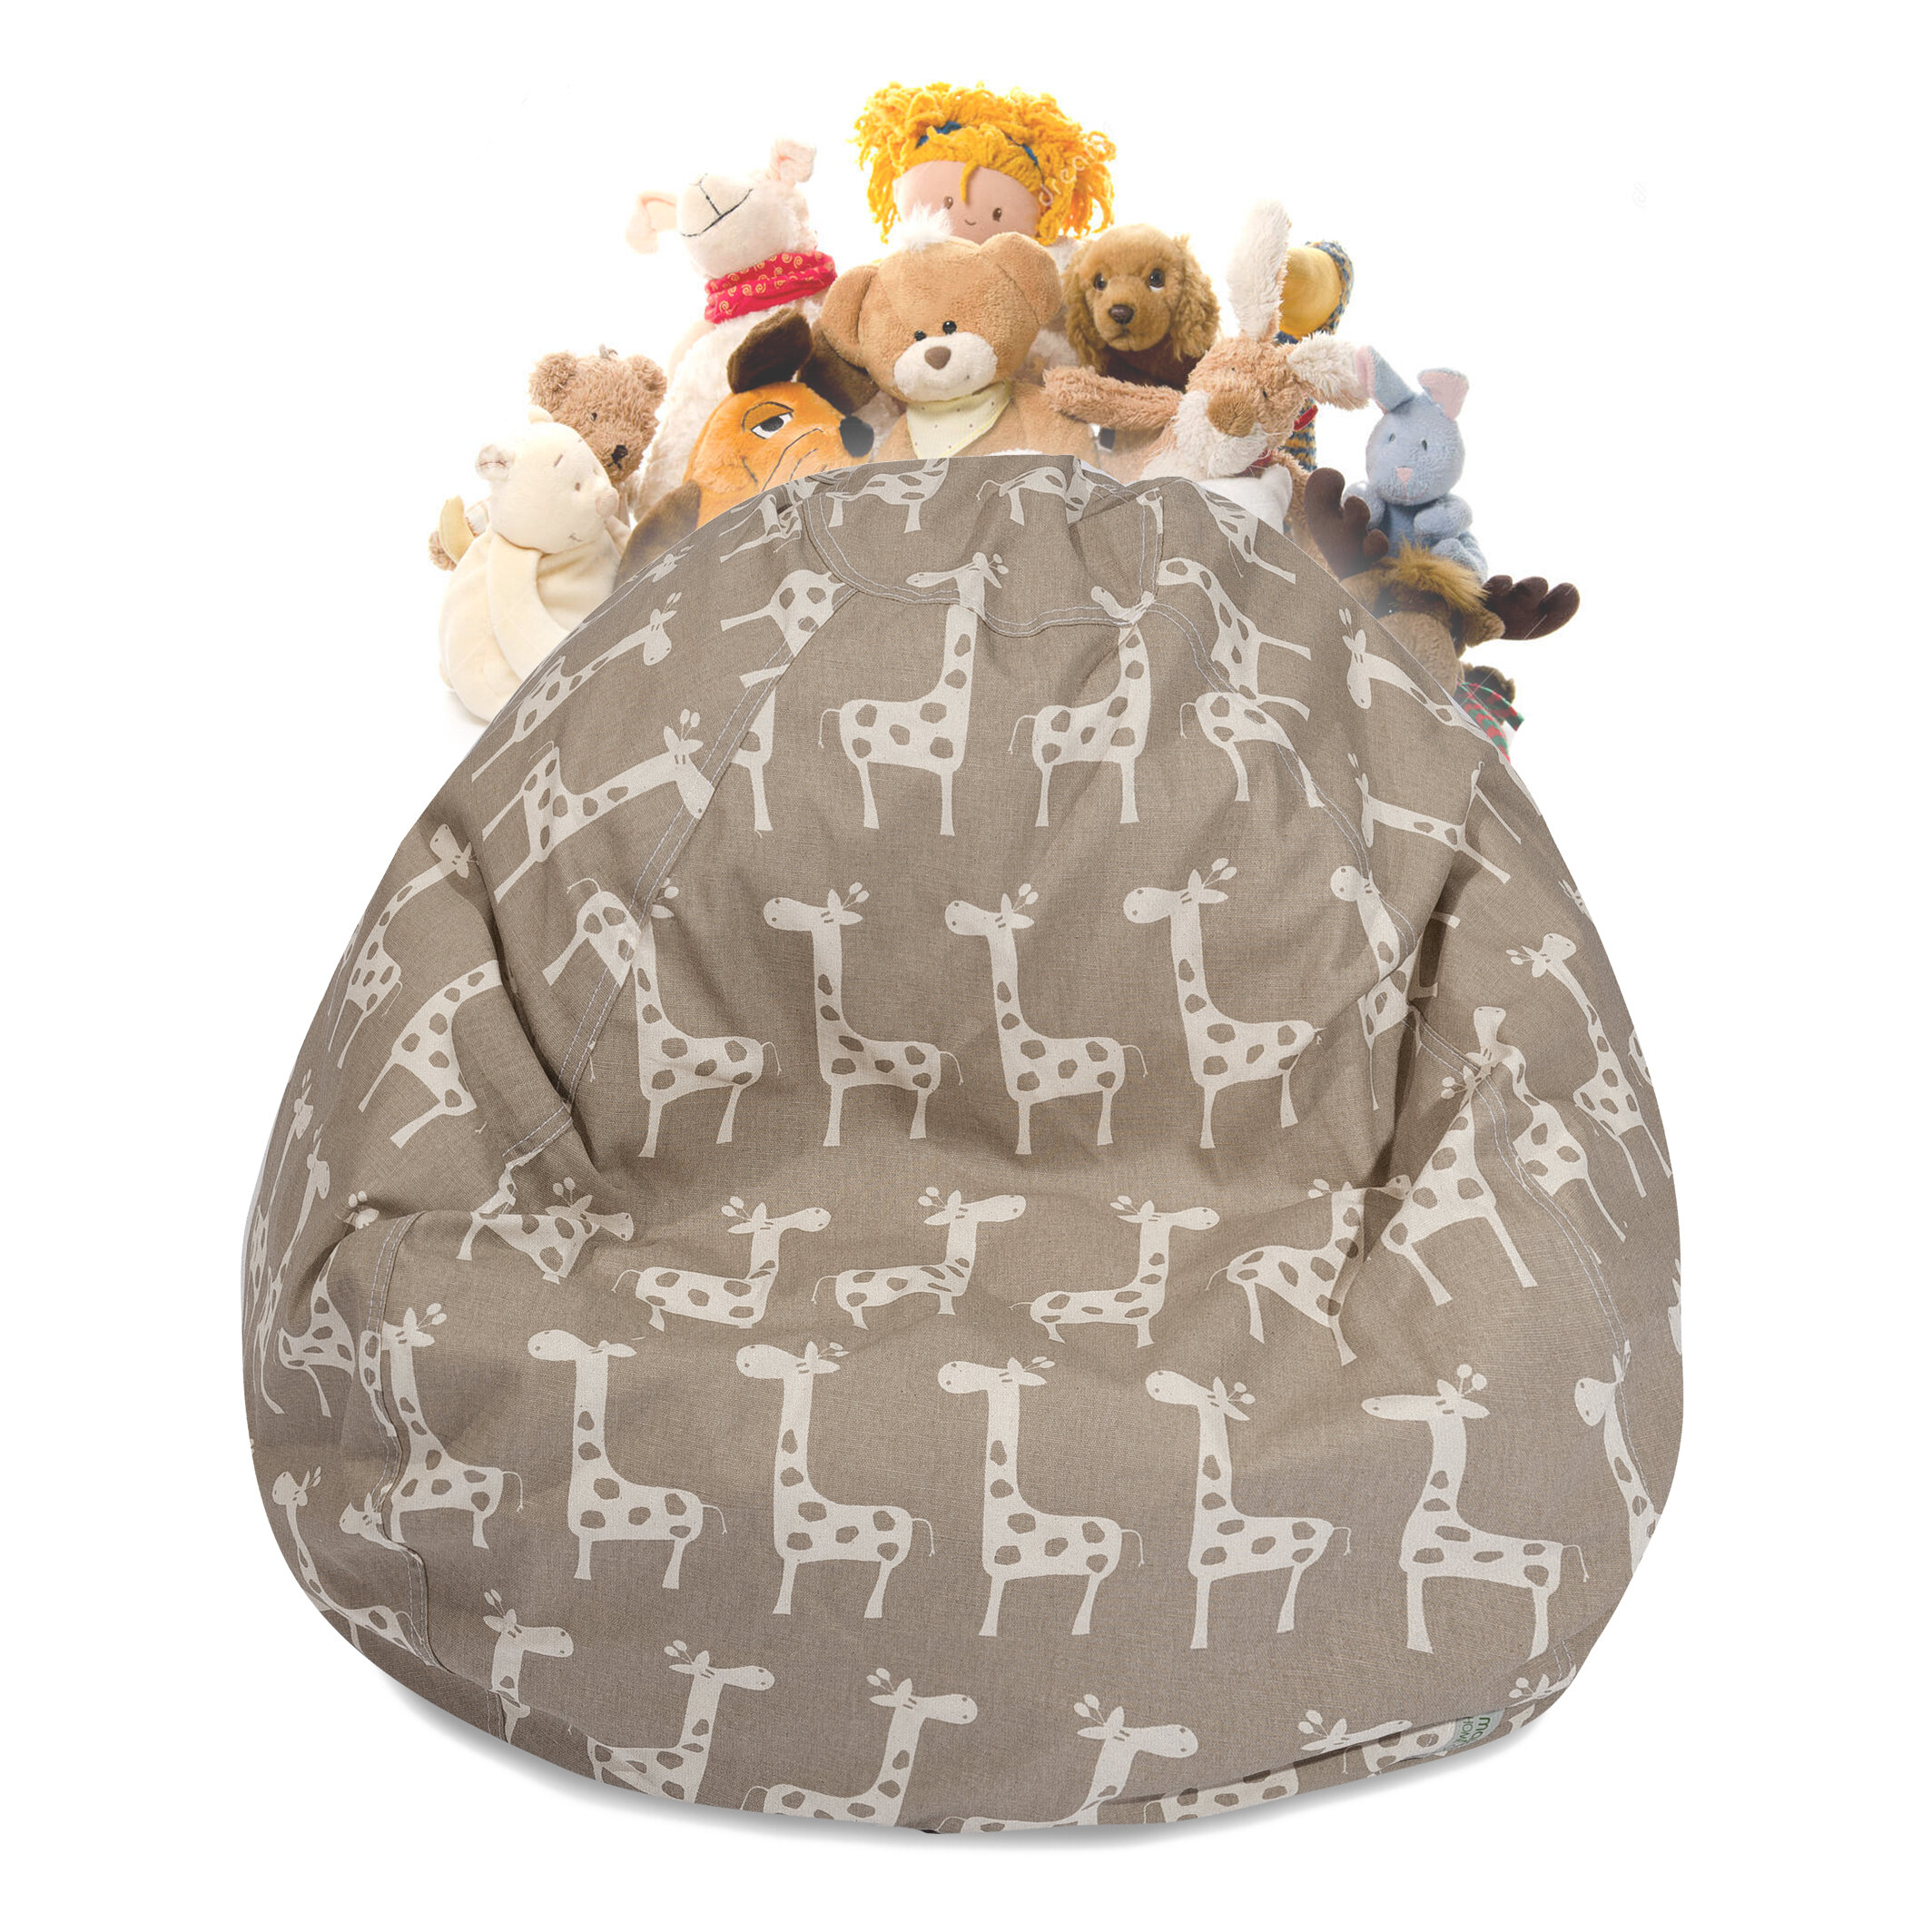 Harriet Bee Stretch Stuffed Animal Toy Storage Bean Bag Chair Wayfair